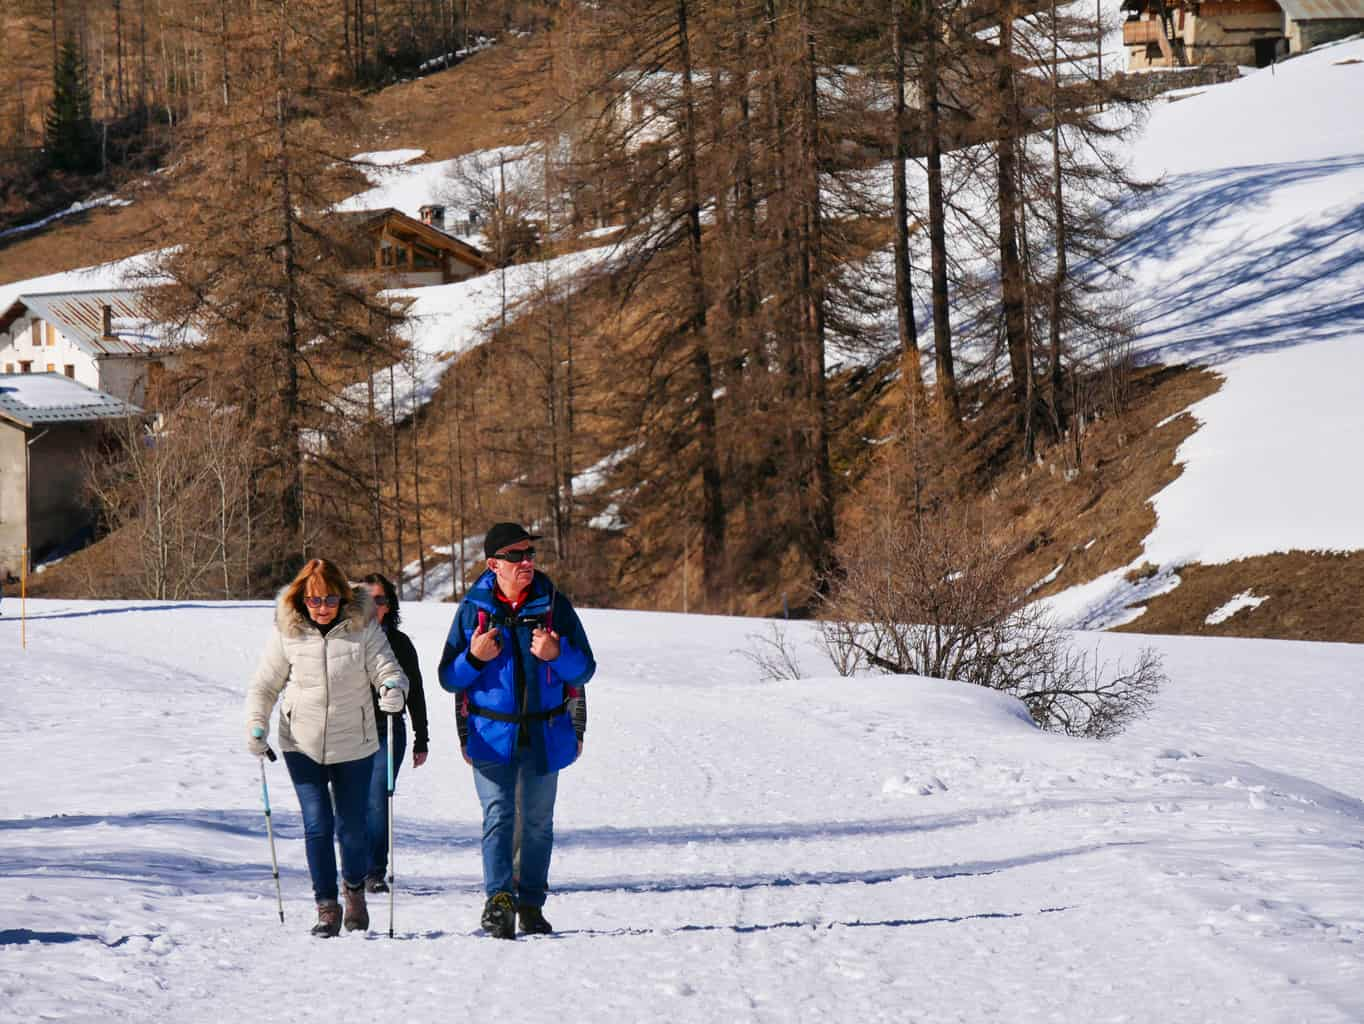 People walking in snow in valley between Les Arcs and La Plagne in the French Alps